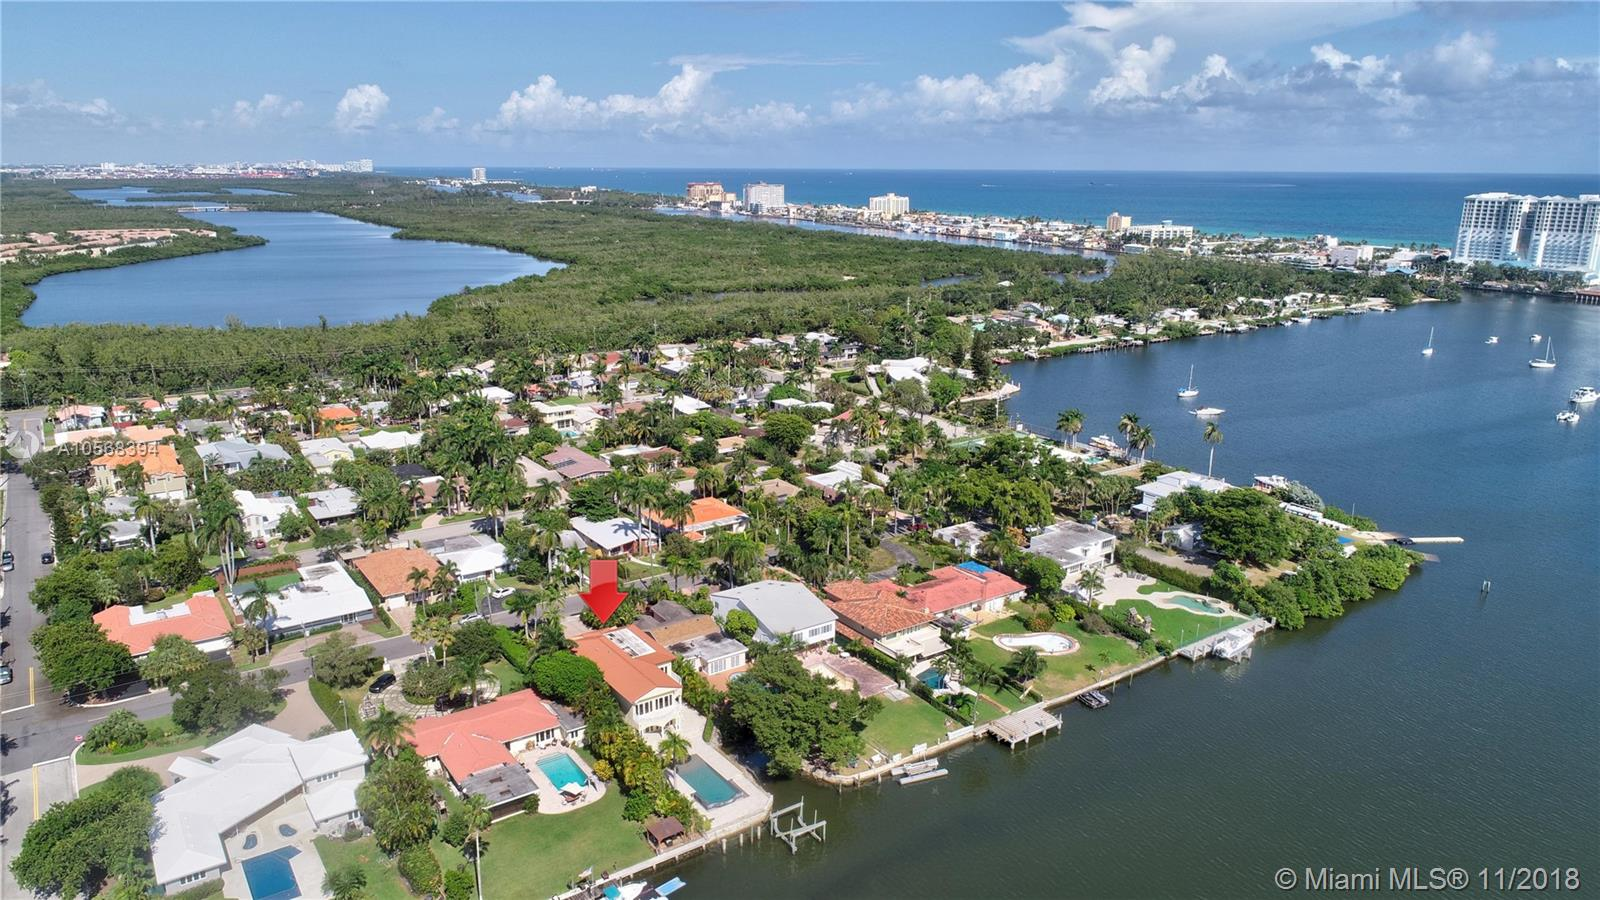 Incredible opportunity to live on the water w/ no fixed bridges and ocean access. Architecturally designed Pebble Tech Pool w/Beach Shelf entry, Spill over Spa w/bubblers & waterfall w/mote. Spacious bright living area, floor to ceiling glass & new Brazilian wood floors. Open Kitchen w/Gas Thermadore professional cook top, Subzero frig etc.  Prestigious Hollywood Lakes, centrally located, biking distance to Hollywood Beach. 2 balconies on second level overlooking the pool & gorgeous water views. Large Travertine Patio surrounding pool w/option for a Summer Kitchen-gas connection.Currently 5 bed 4 bath-has various options for different layouts-rooms for Media, Office, Summer Kitchen, Entertainment/Play Room...All Hurricane impact windows/doors. Generator ready. Must see to appreciate!